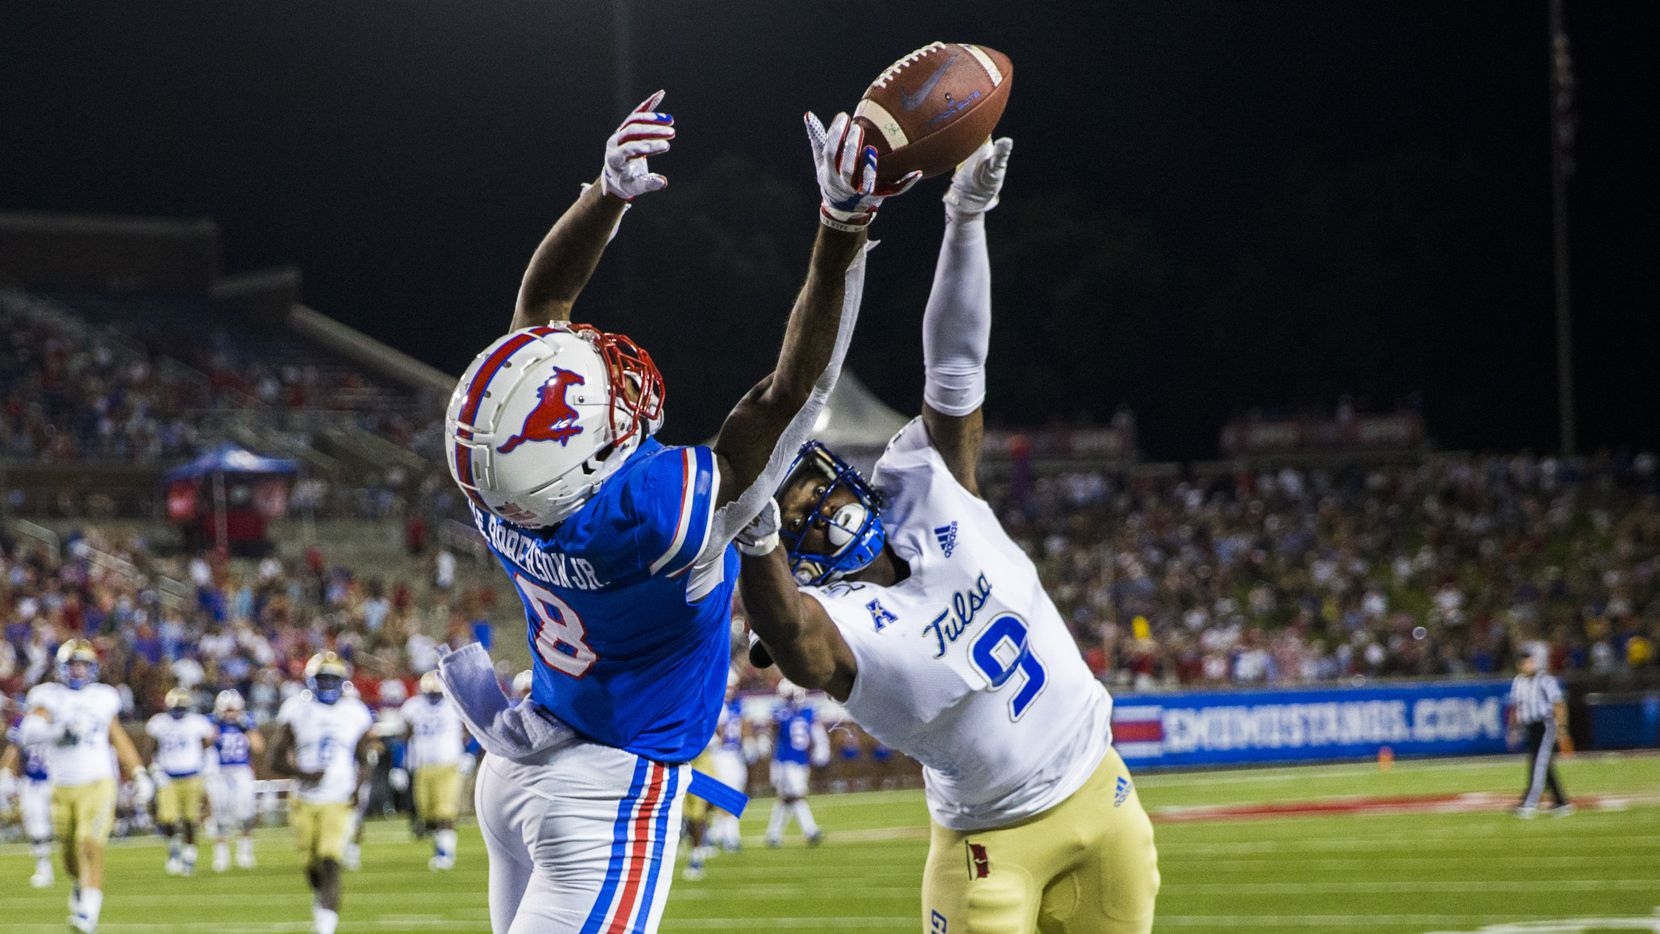 SMU Mustangs wide receiver Reggie Roberson Jr. (8) misses a pass with Tulsa Golden Hurricane cornerback Reggie Robinson II (9) in the end zone during the second quarter of an NCAA football game between Tulsa and SMU on Saturday, October 5, 2019 at Ford Stadium.